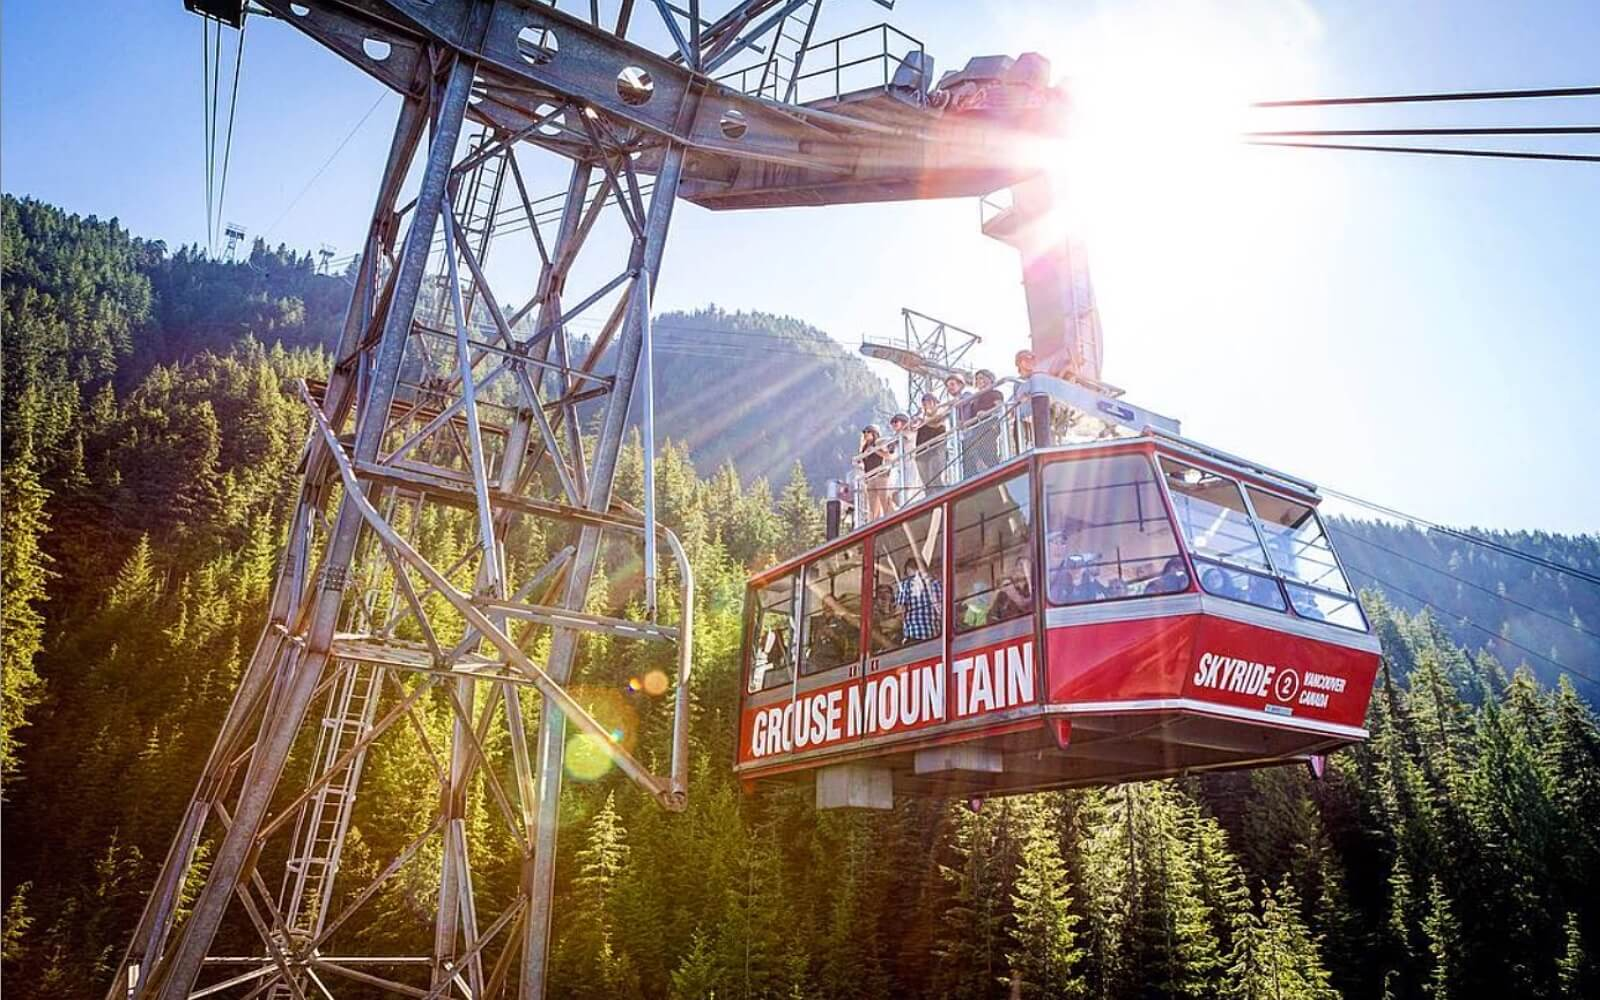 The Grouse Mountain Skyride descends down the mountain